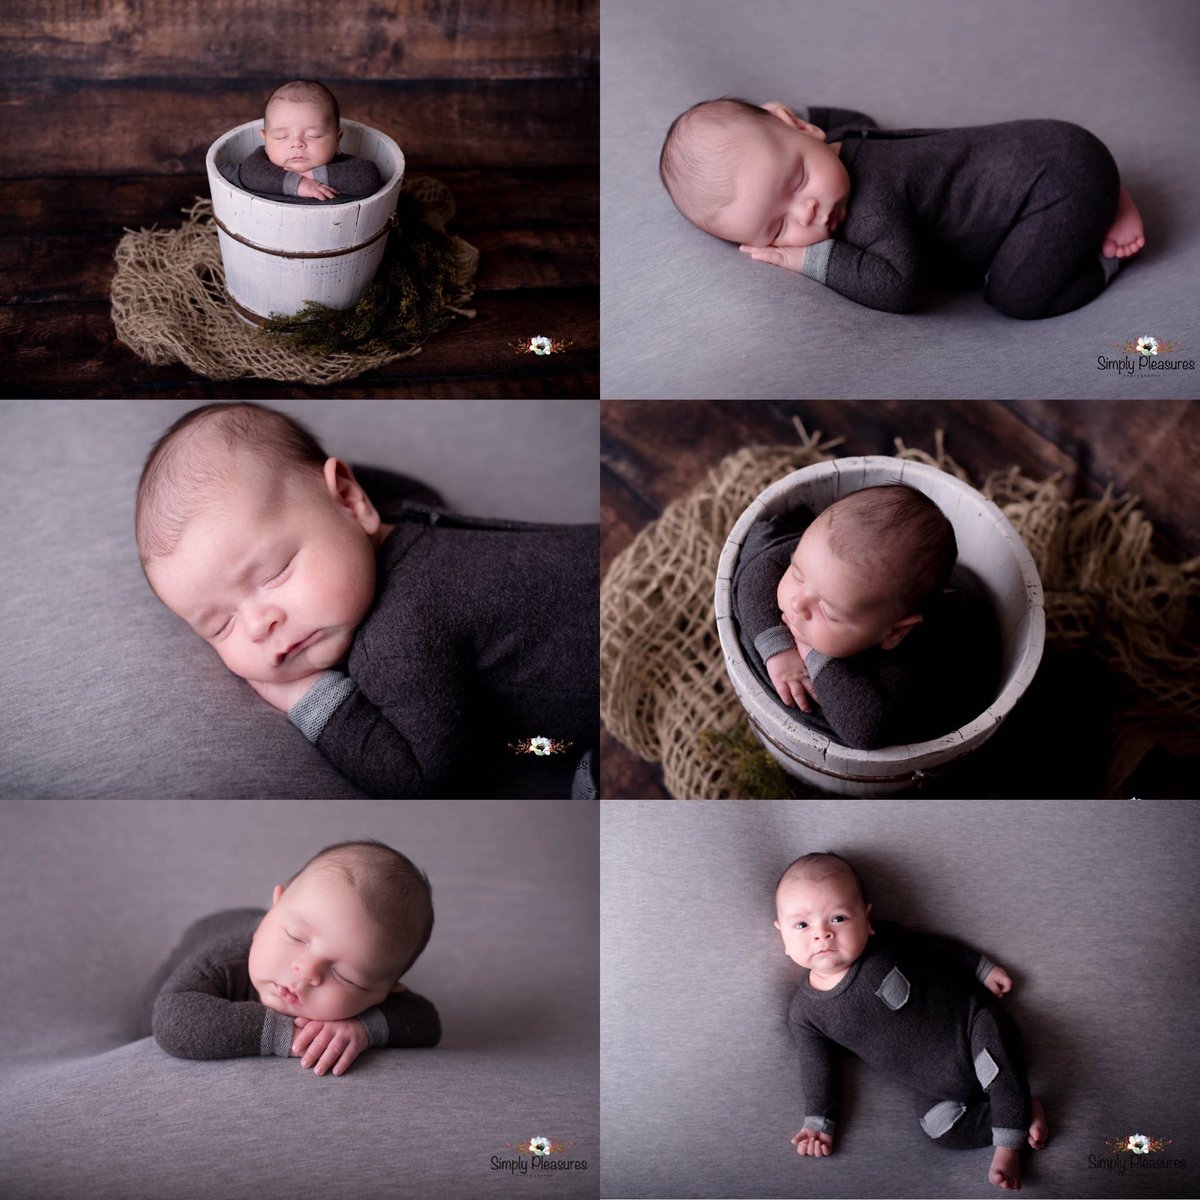 Now booking for July/August. #studiophotographer #studiophotoshoot #newbornphotographer #childrenphotographer #cypressphotographystudio #cypresstexasphotography  #cypresstxphotographystudio  #babymilestones #simplypleasuresphotography http://simplypleasuresphotography.com 832-971-2593pic.twitter.com/qyMTJXlMDN